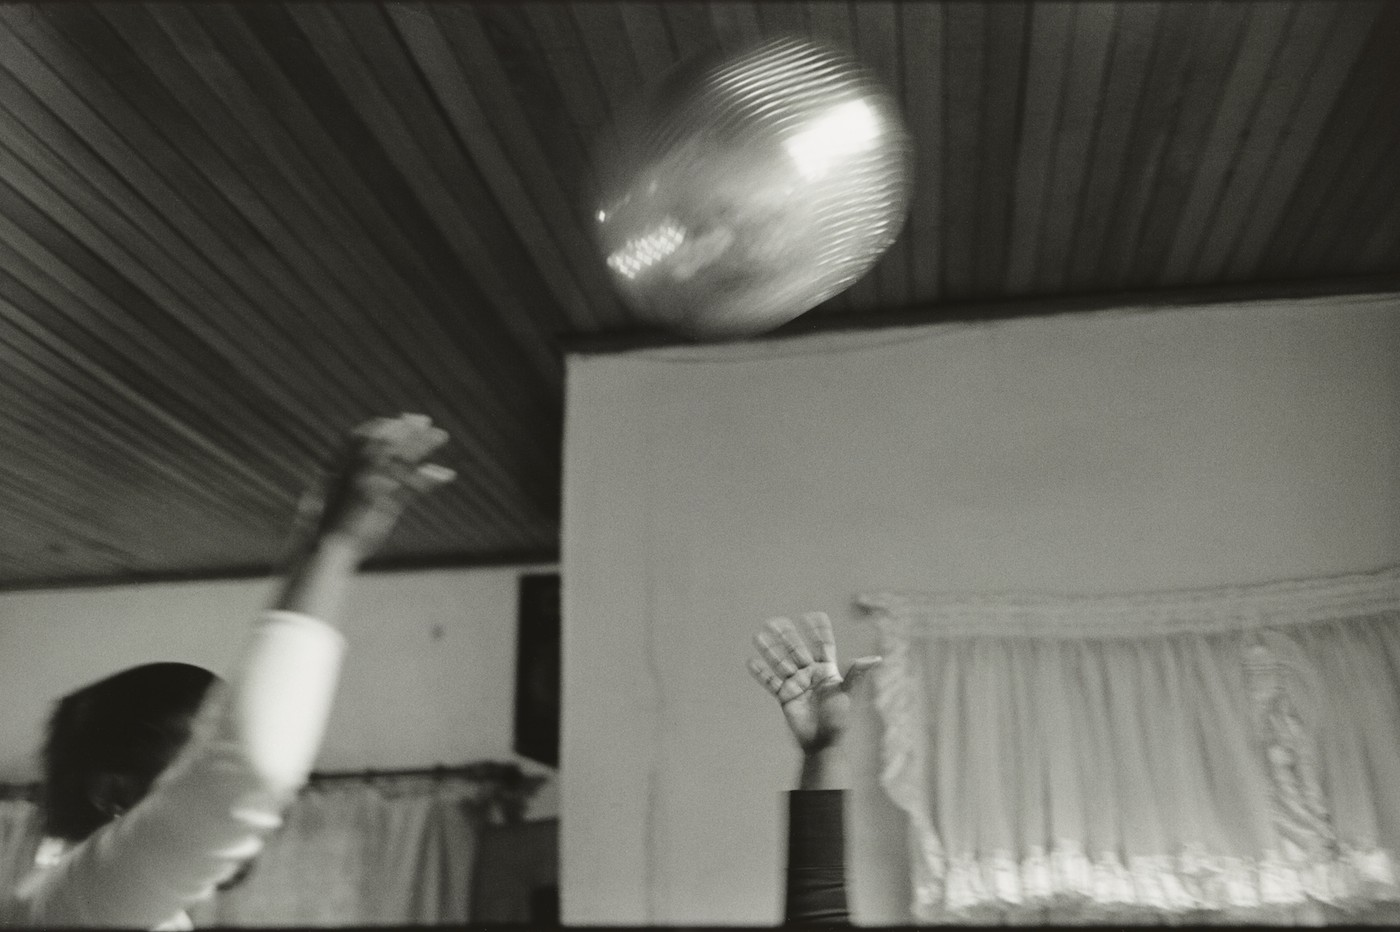 """Ananias Léki Dago, """"Orlando East, Soweto"""" from the series 'Shebeen Blues' (negative 2007, print 2015), gelatin silver print, approx 24 × 20 in (courtesy of the artist, © Ananias Léki Dago)"""